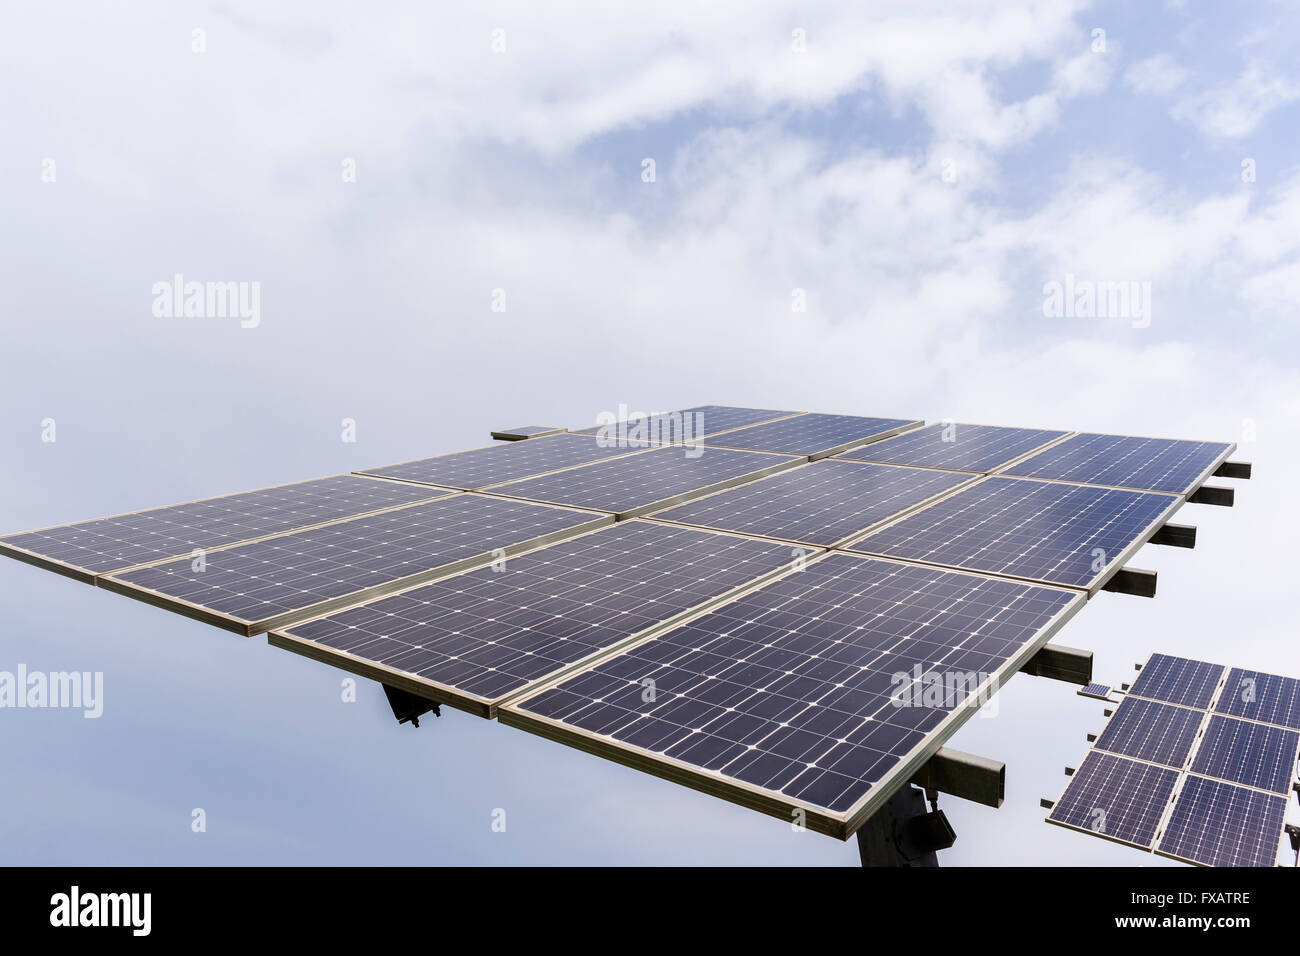 Solar screen panels creating clean electricity outdoors facing north closeup photo of technology structures. - Stock Image